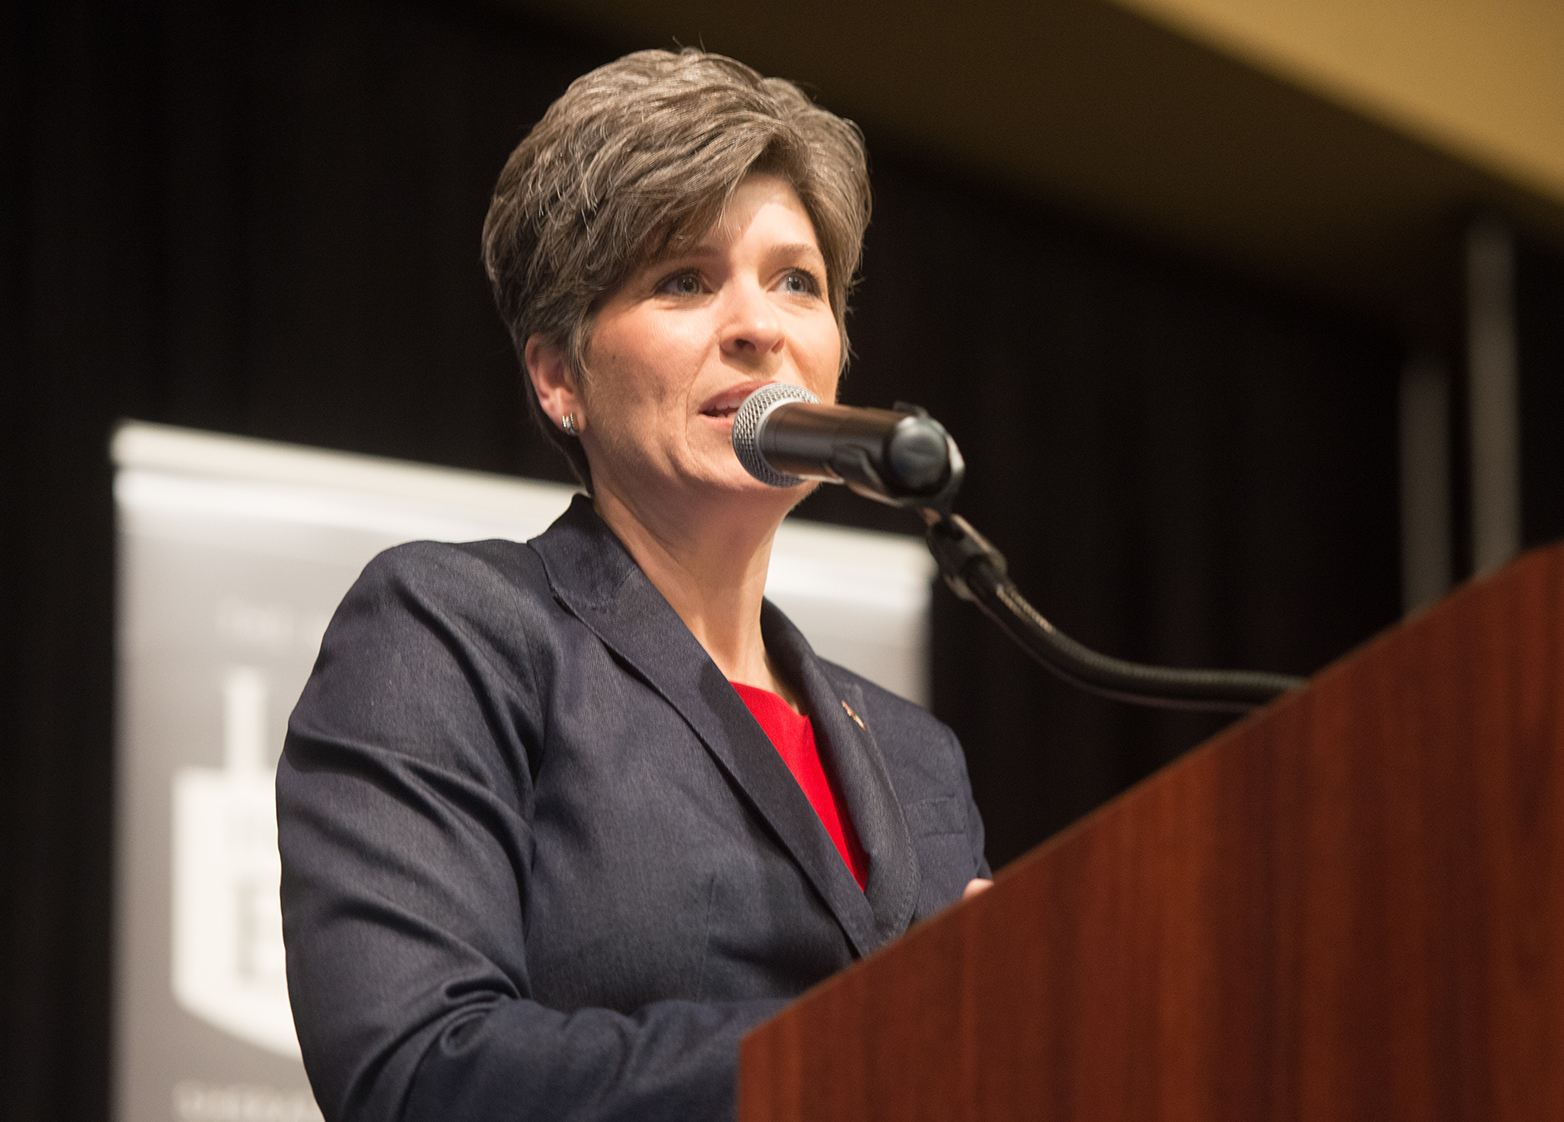 Senator Joni Ernst held a telephone town hall with cons